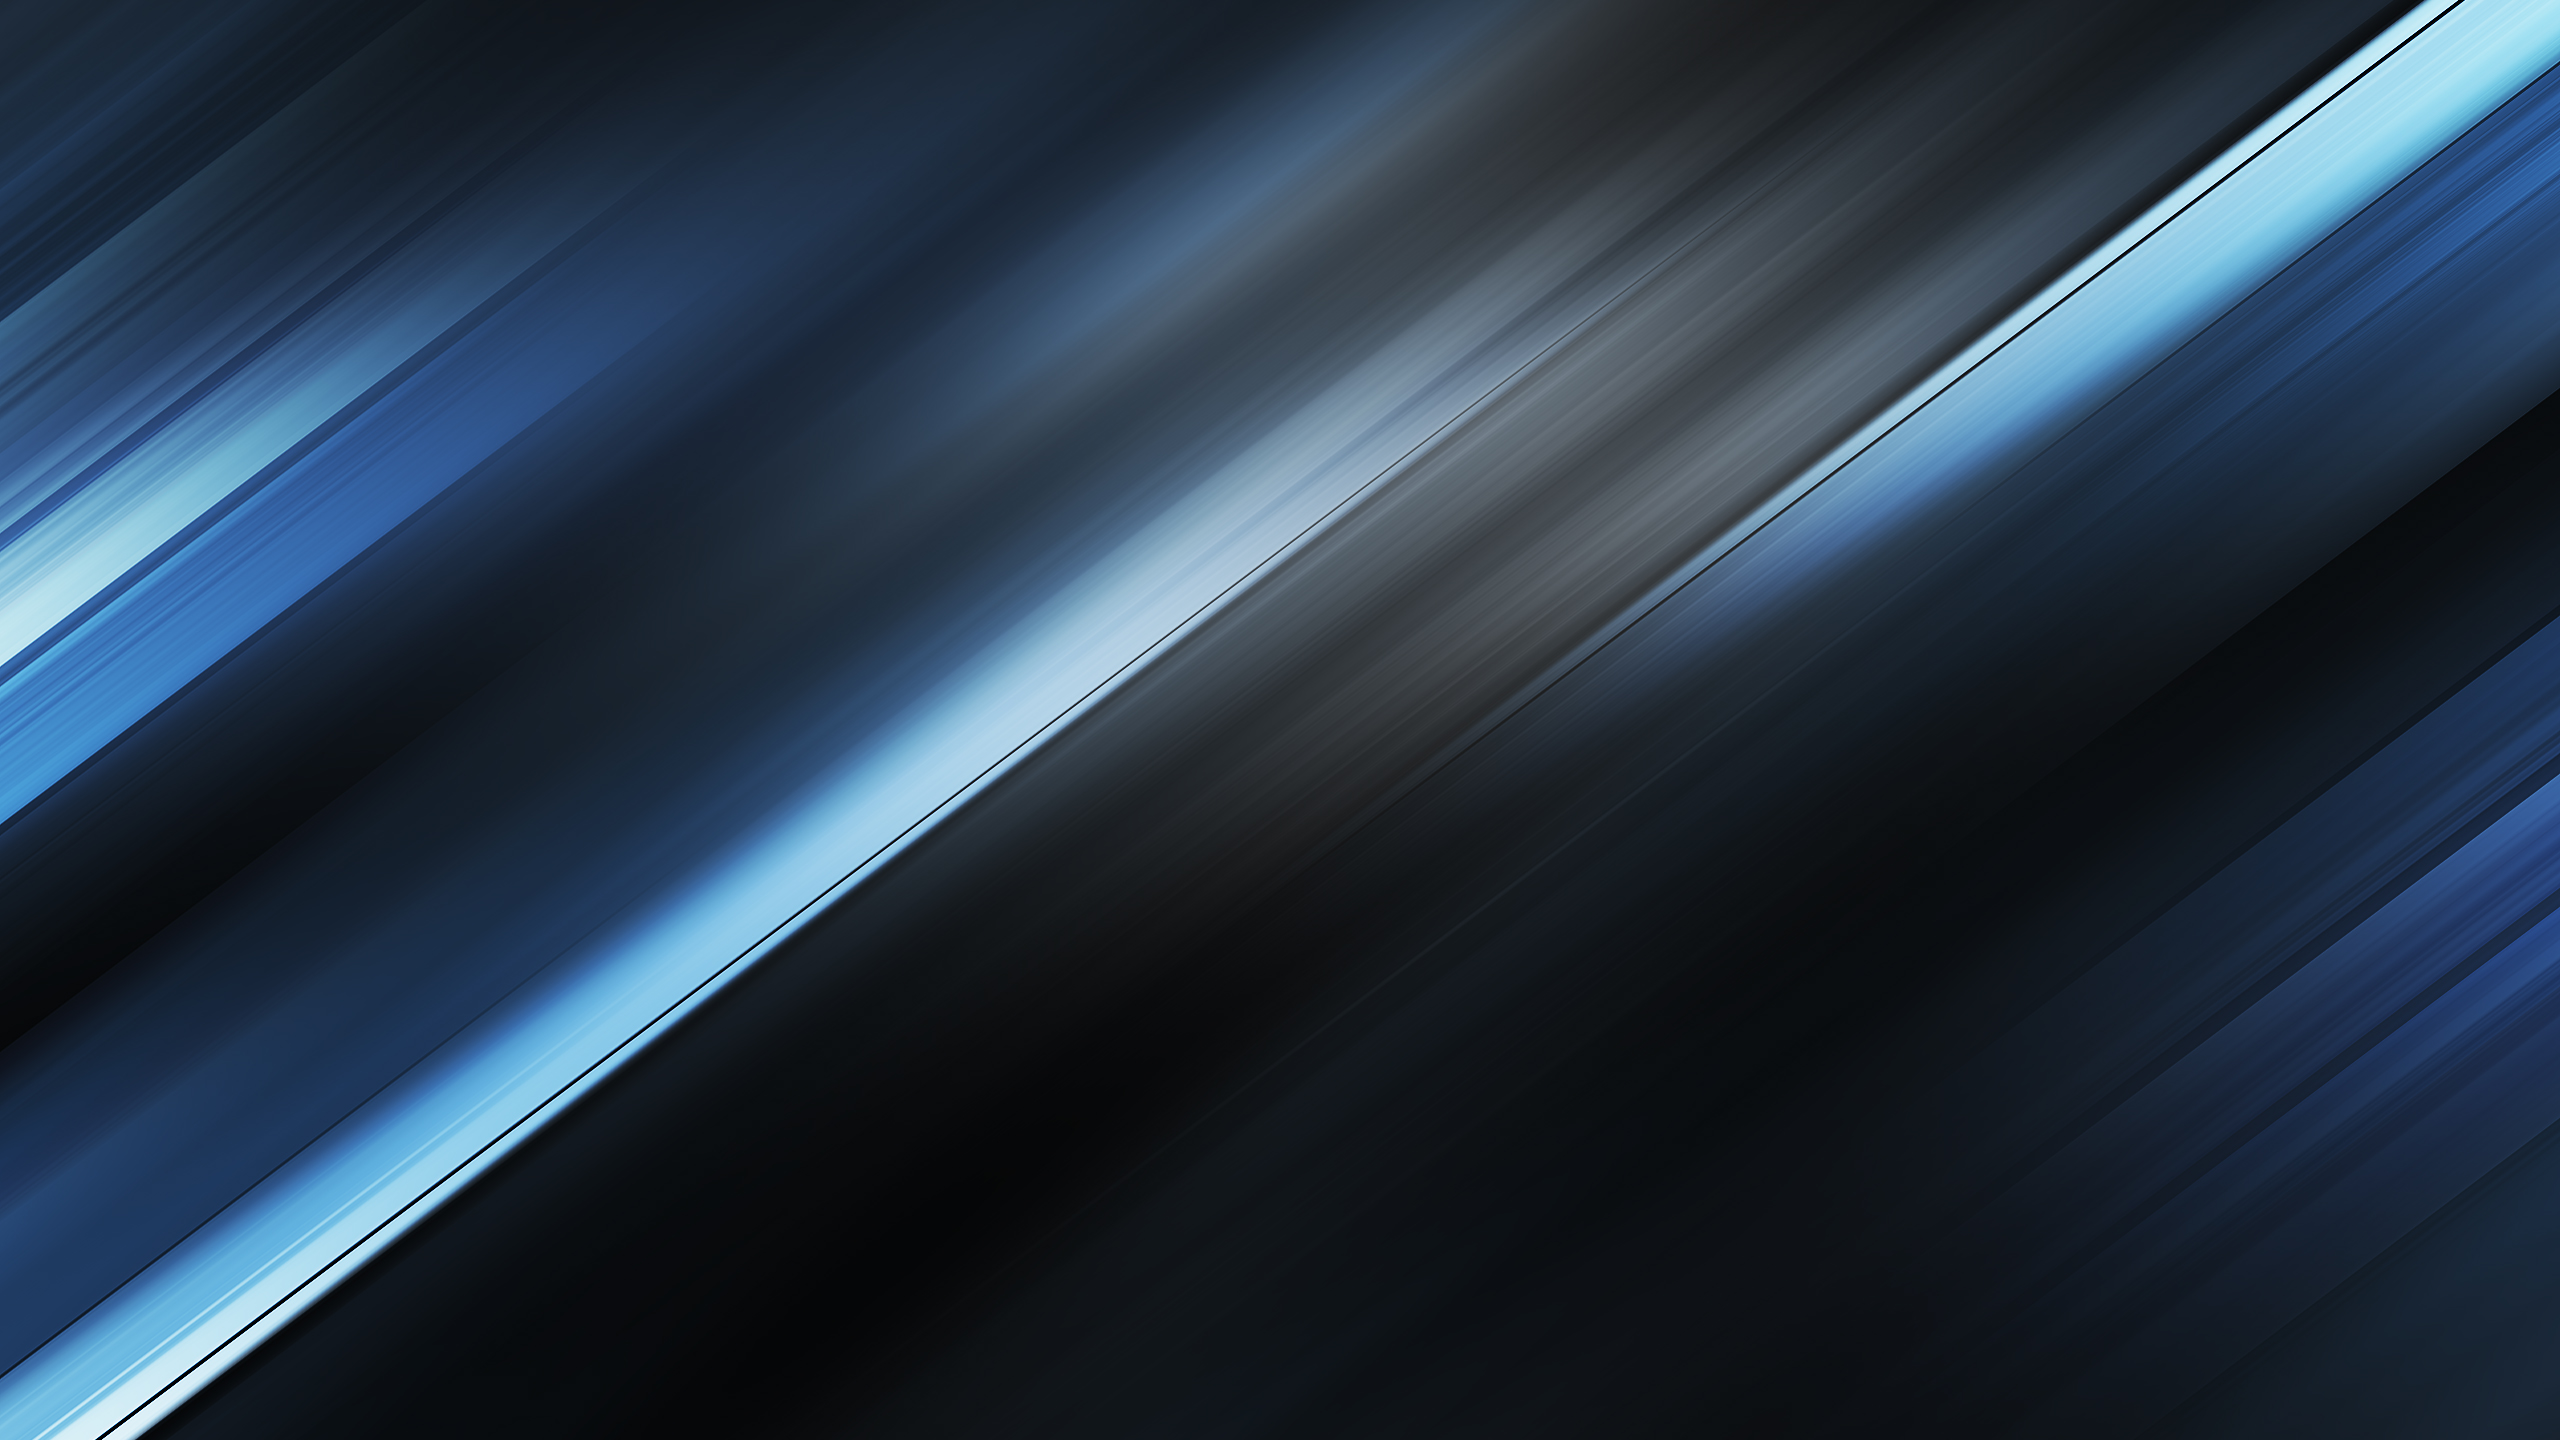 Blue Metallic Background wallpapers HD   413843 2560x1440